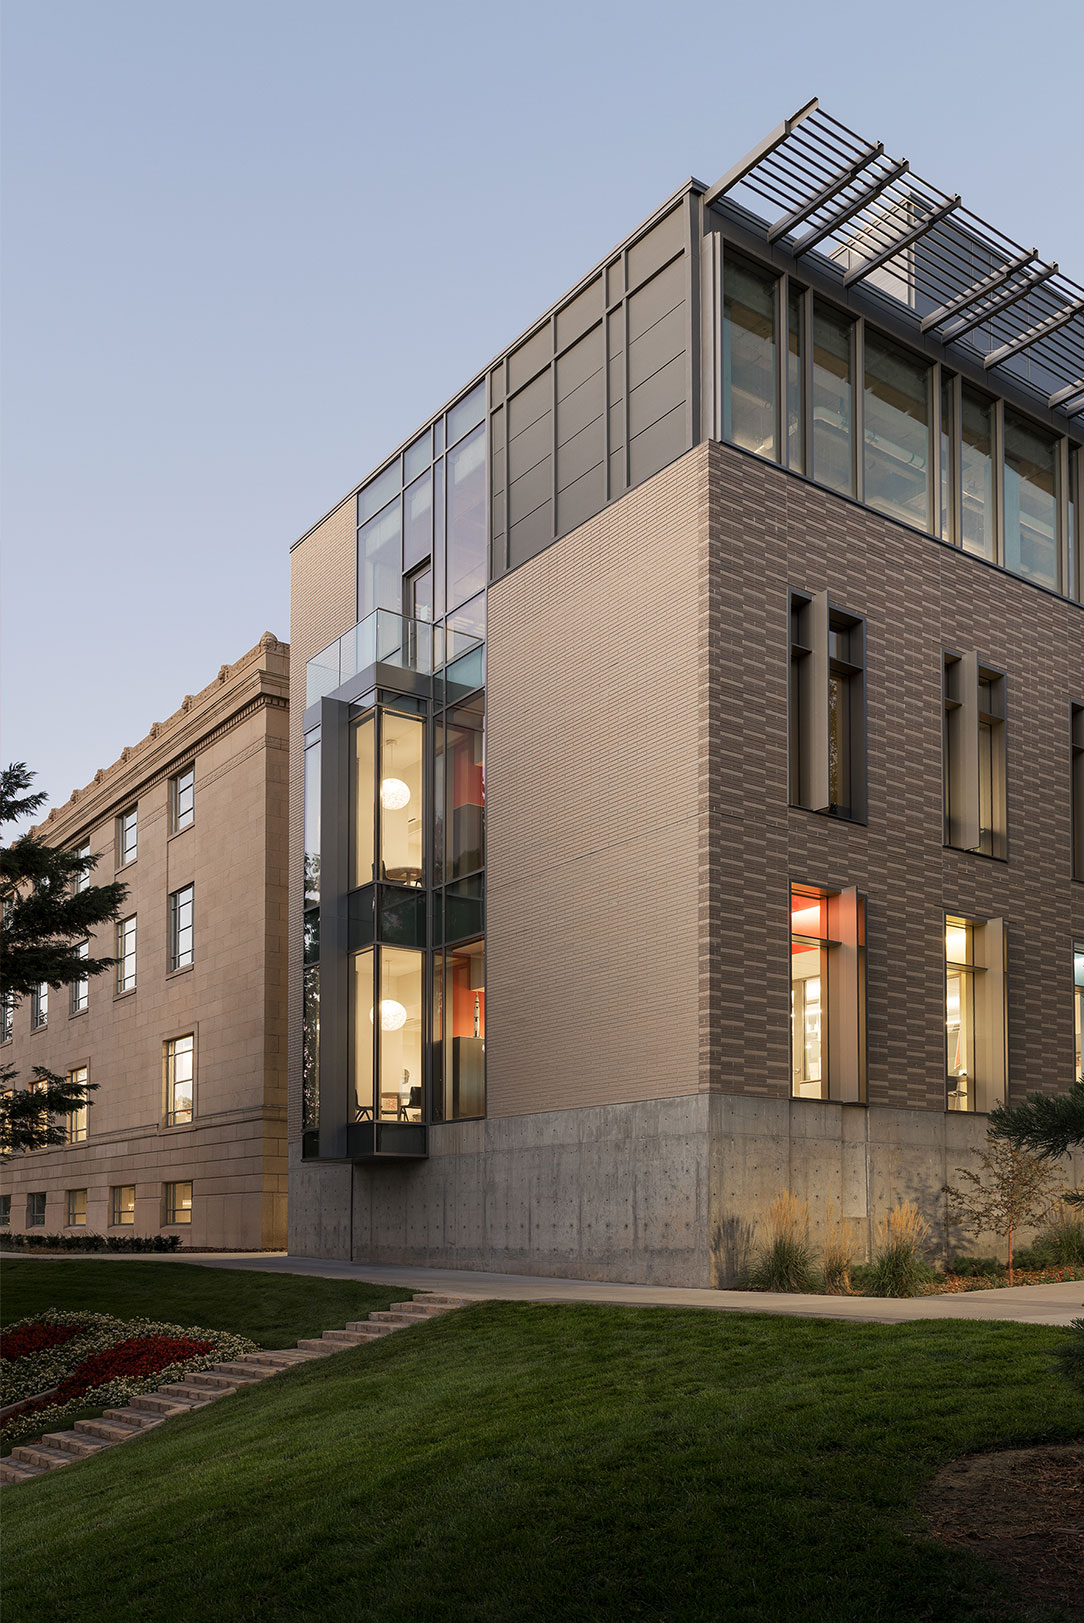 Exterior Facade of New Addition of Crocker Science Center taken at an angle with lawn